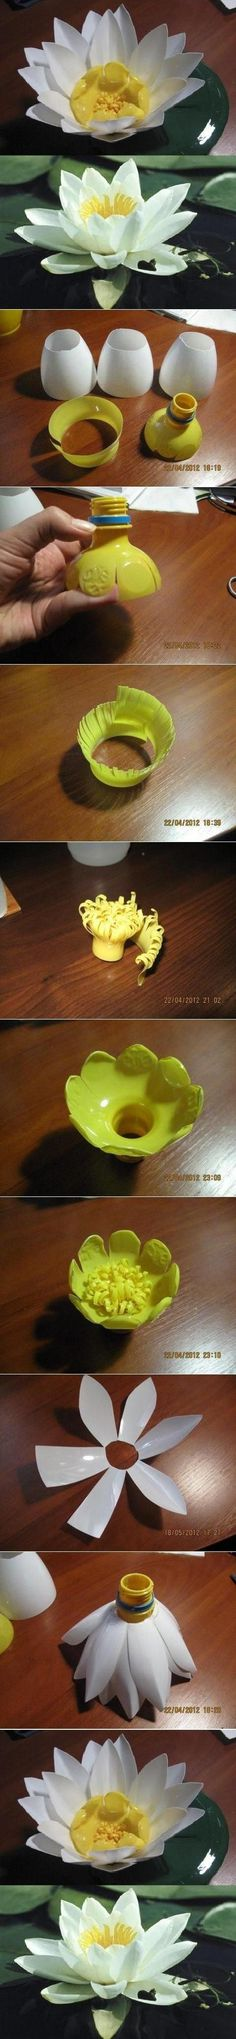 DIY Plastic Bottle Lily Flower DIY Projects /